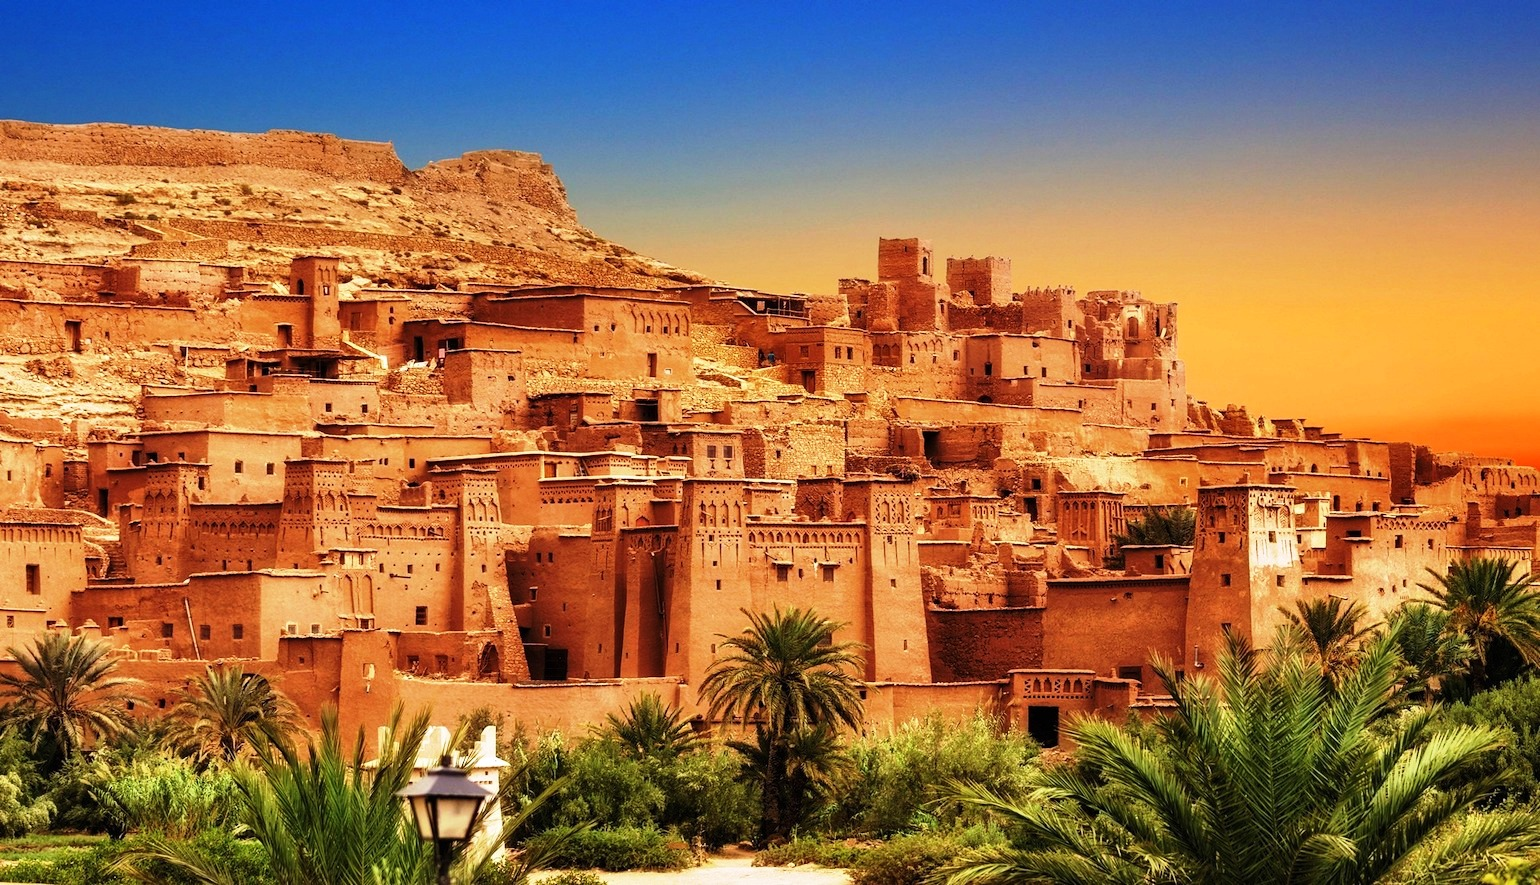 03 days Morocco New Year desert tour to Erg Chigaga from Marrakech